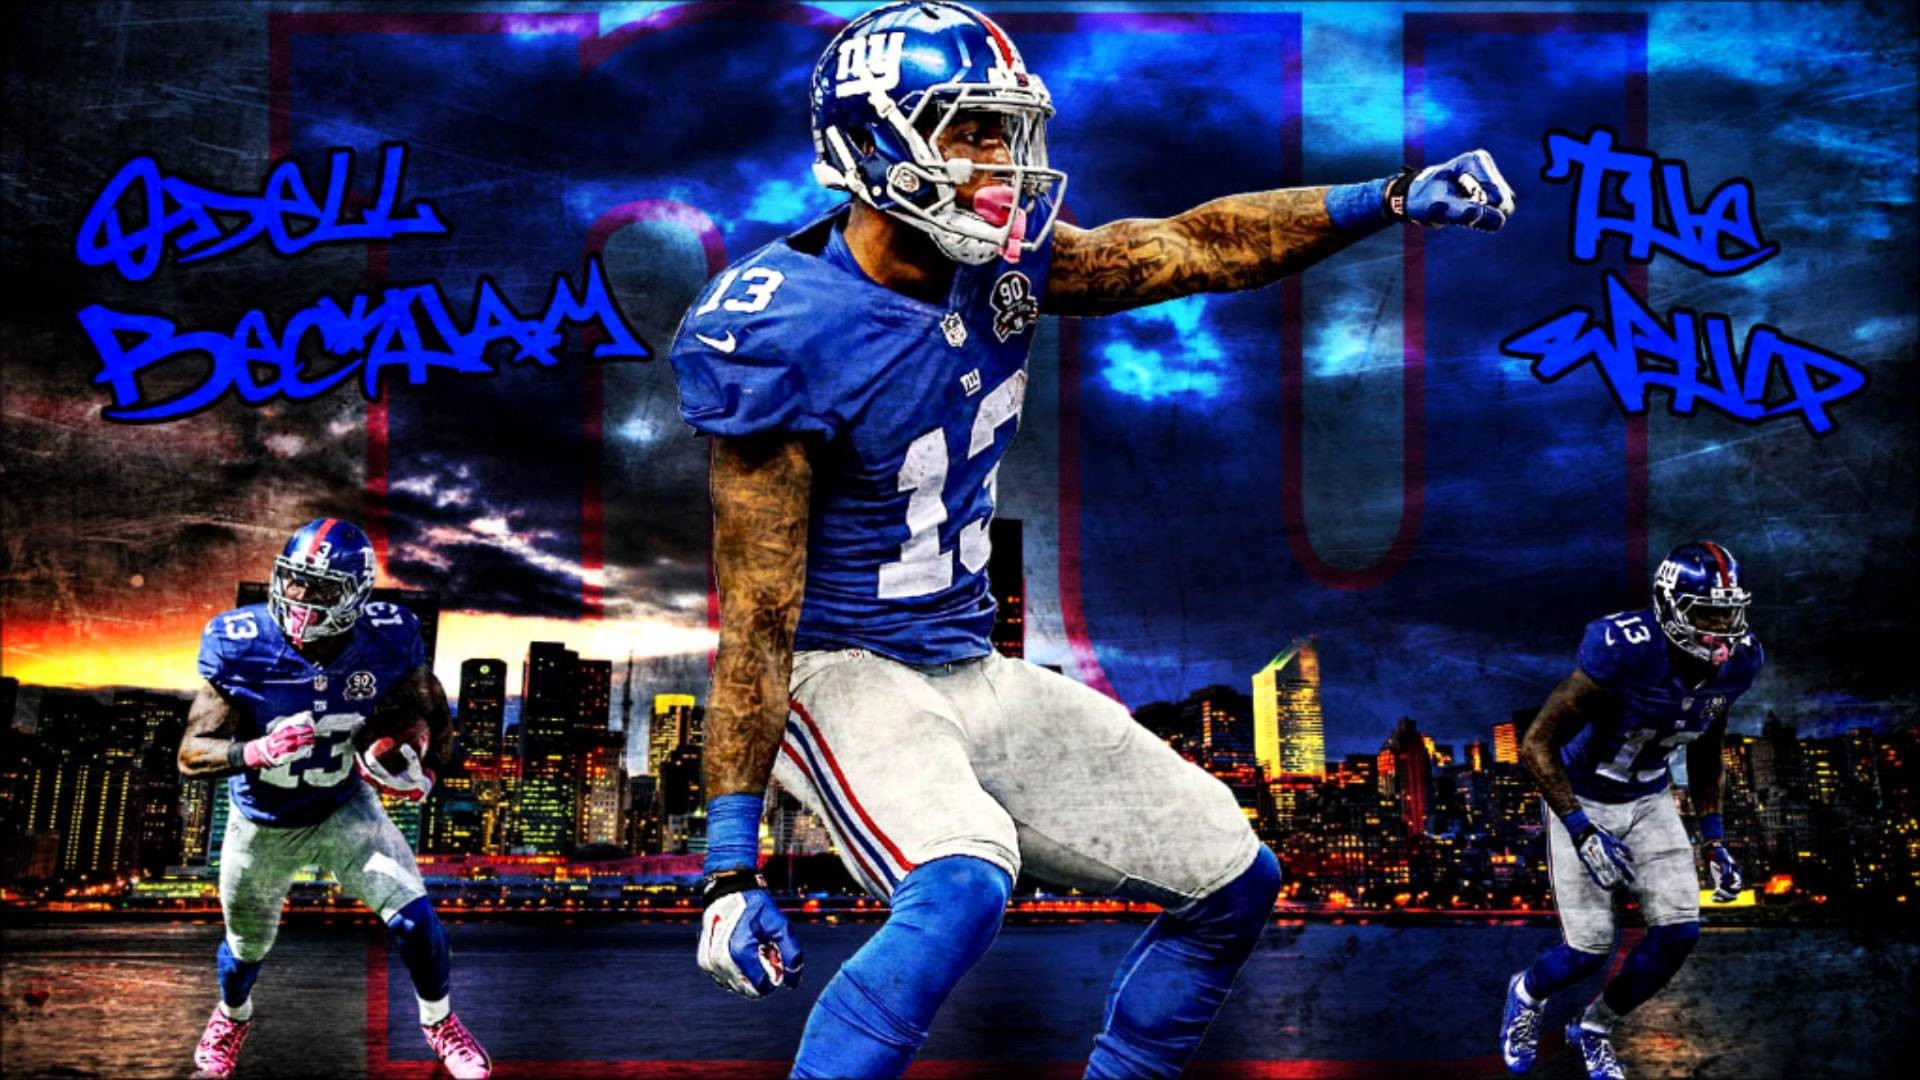 Awesome Wallpapers Dabbing Nfl Player: Odell Beckham Jr Football Wallpapers (62+ Images